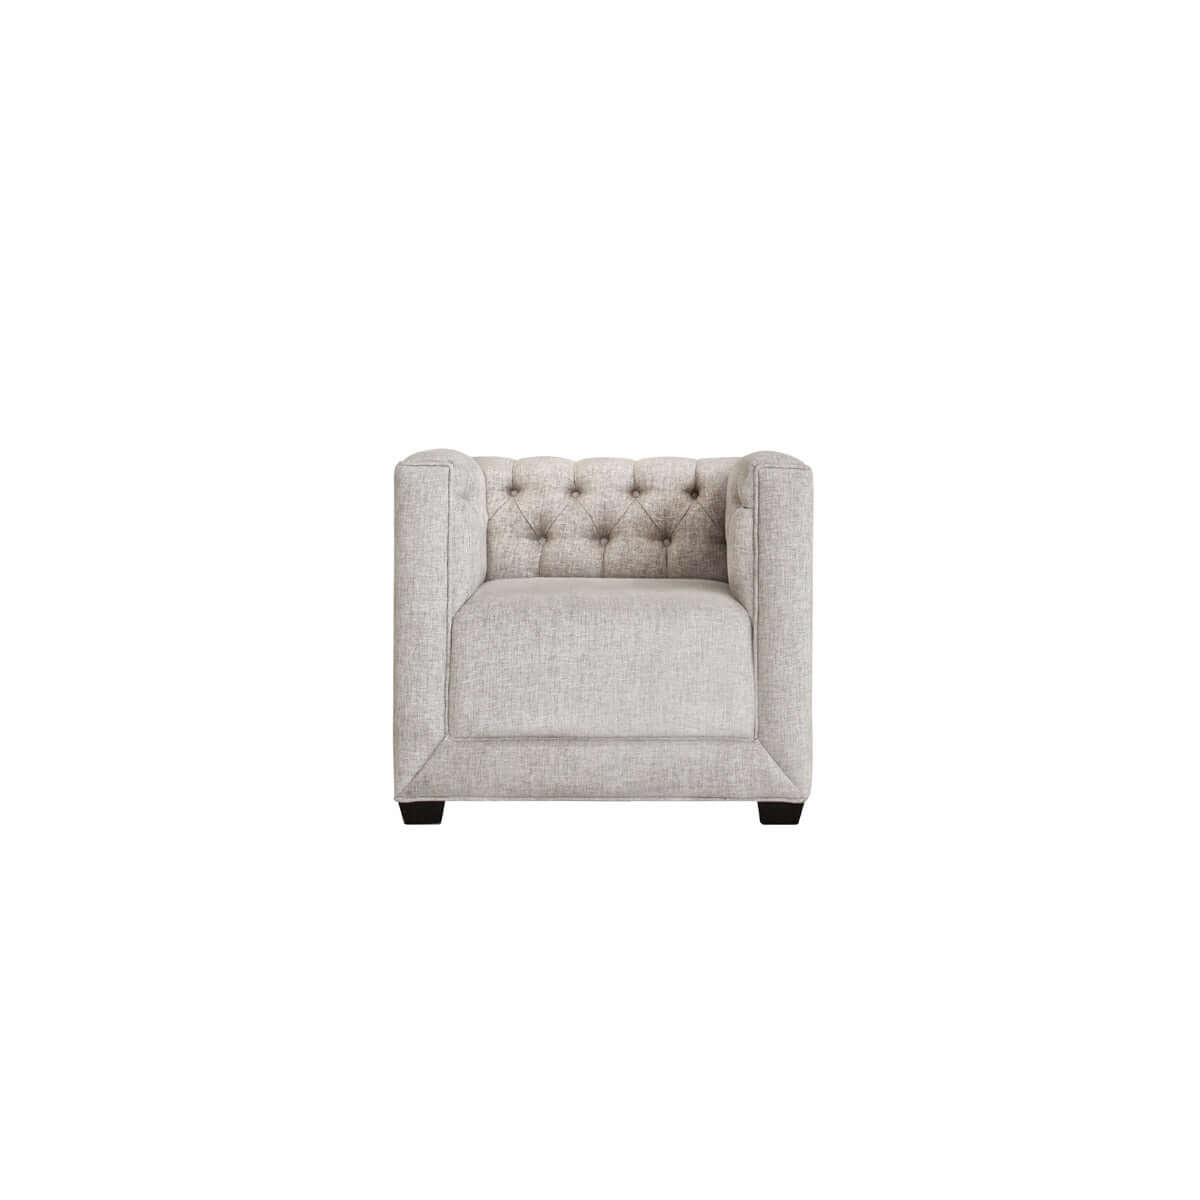 Hampton 1 seat tufted, classic and stylish sofa